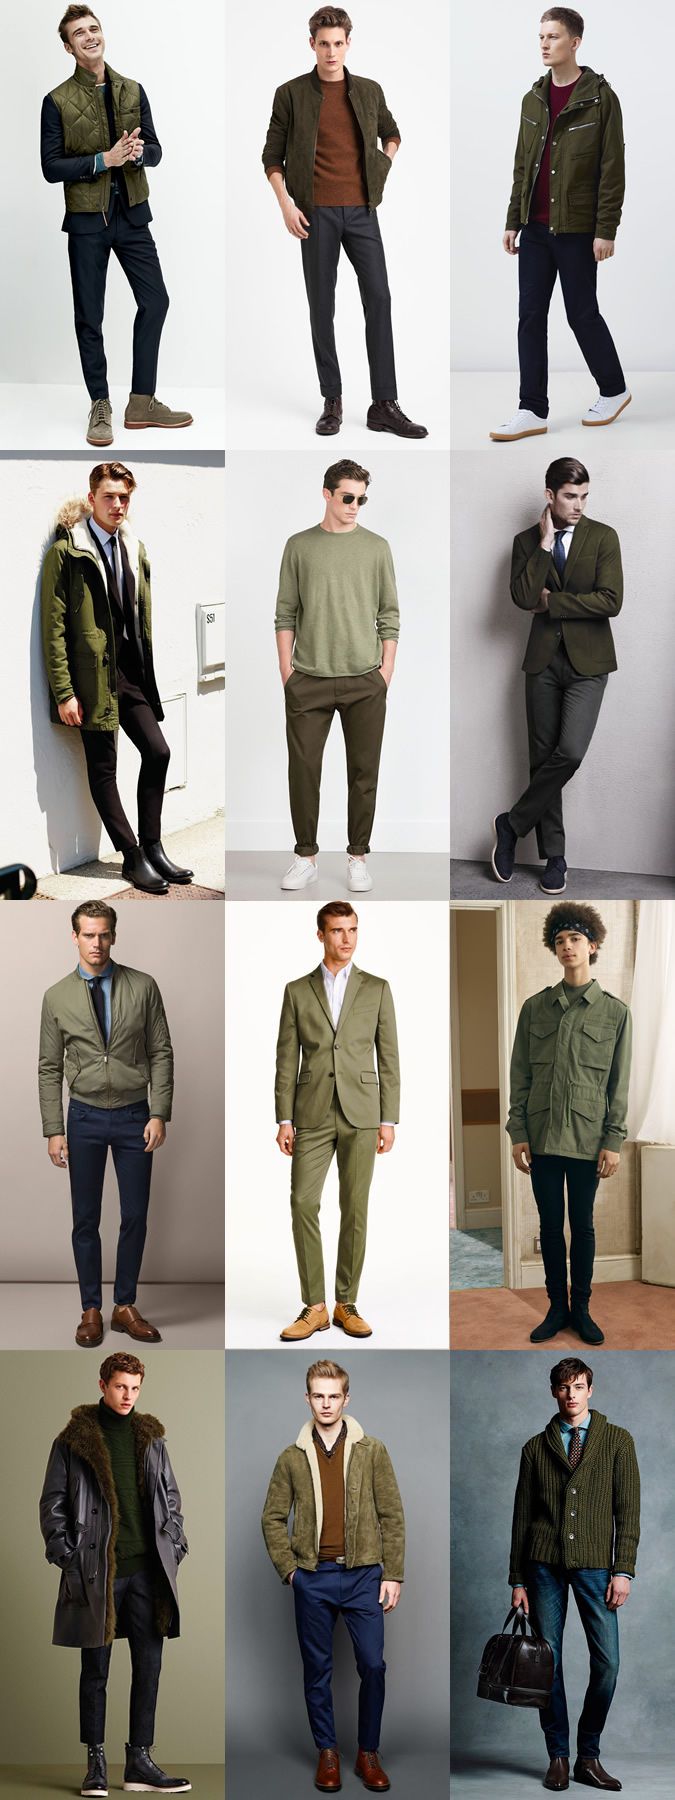 aw15trendsgreen.png